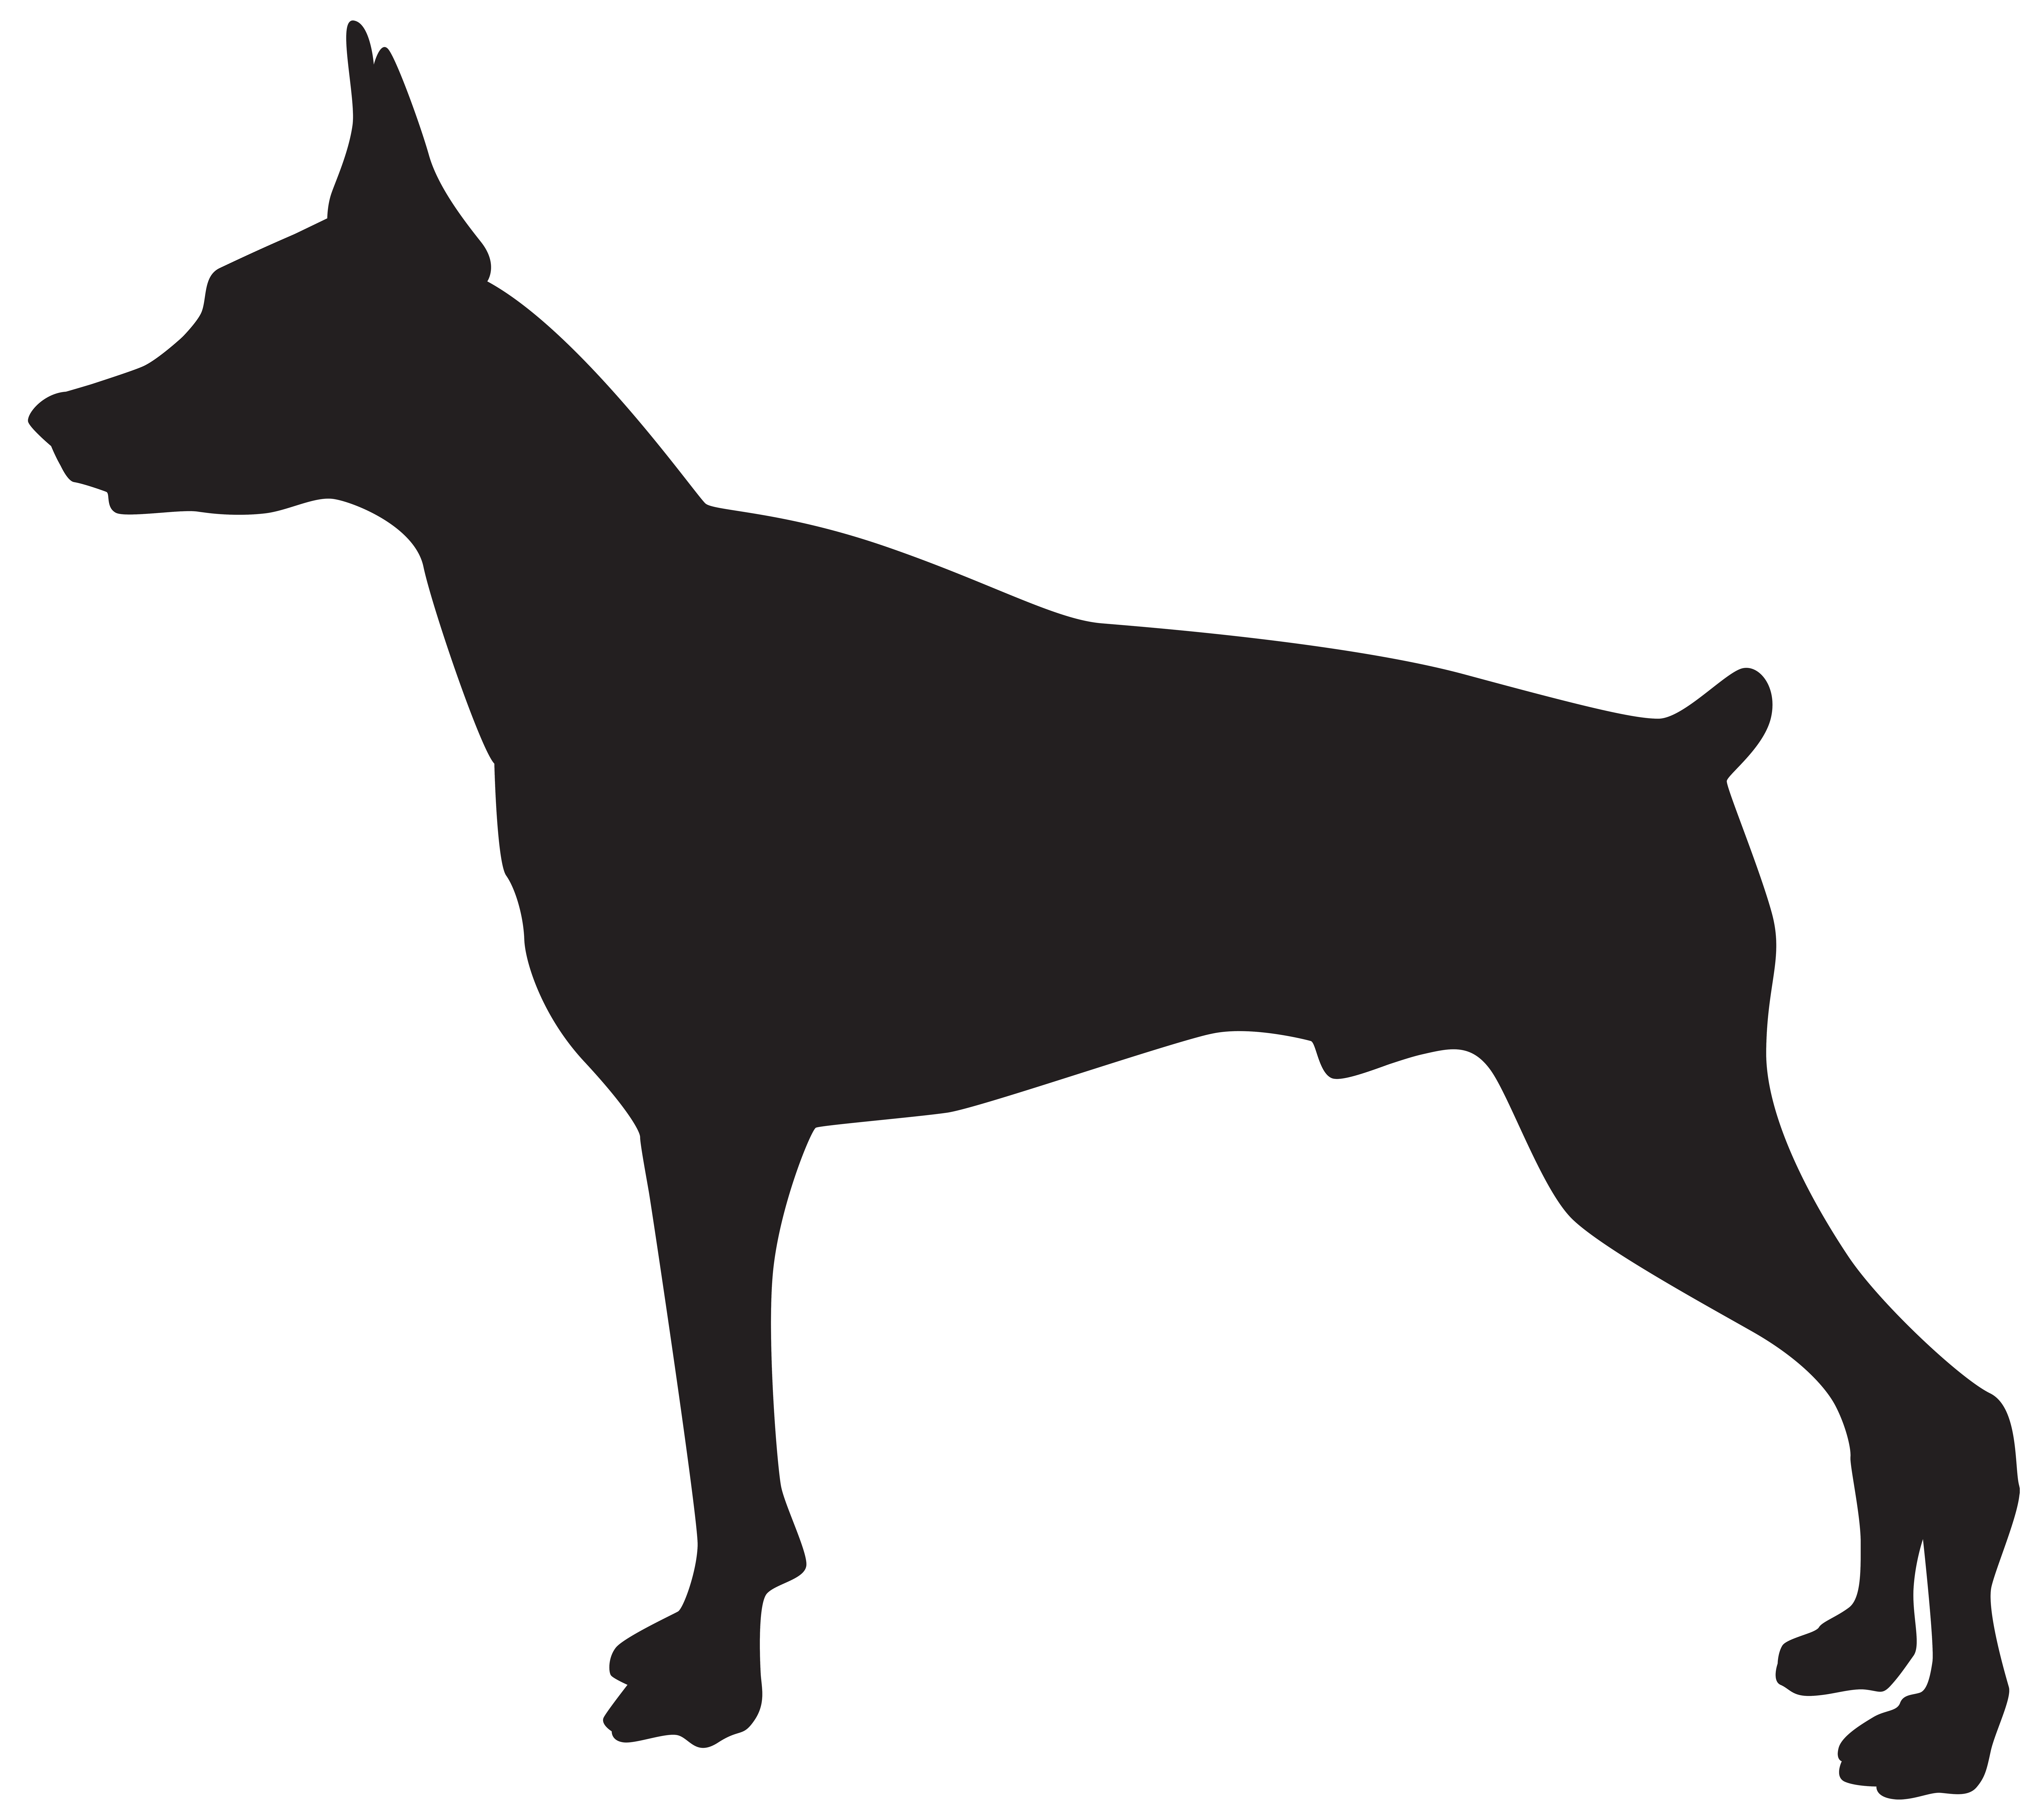 Doberman Dog Silhouette Png Transparent Clip Art Image Gallery Yopriceville High Quality Images And Transparent Png Free Clipart